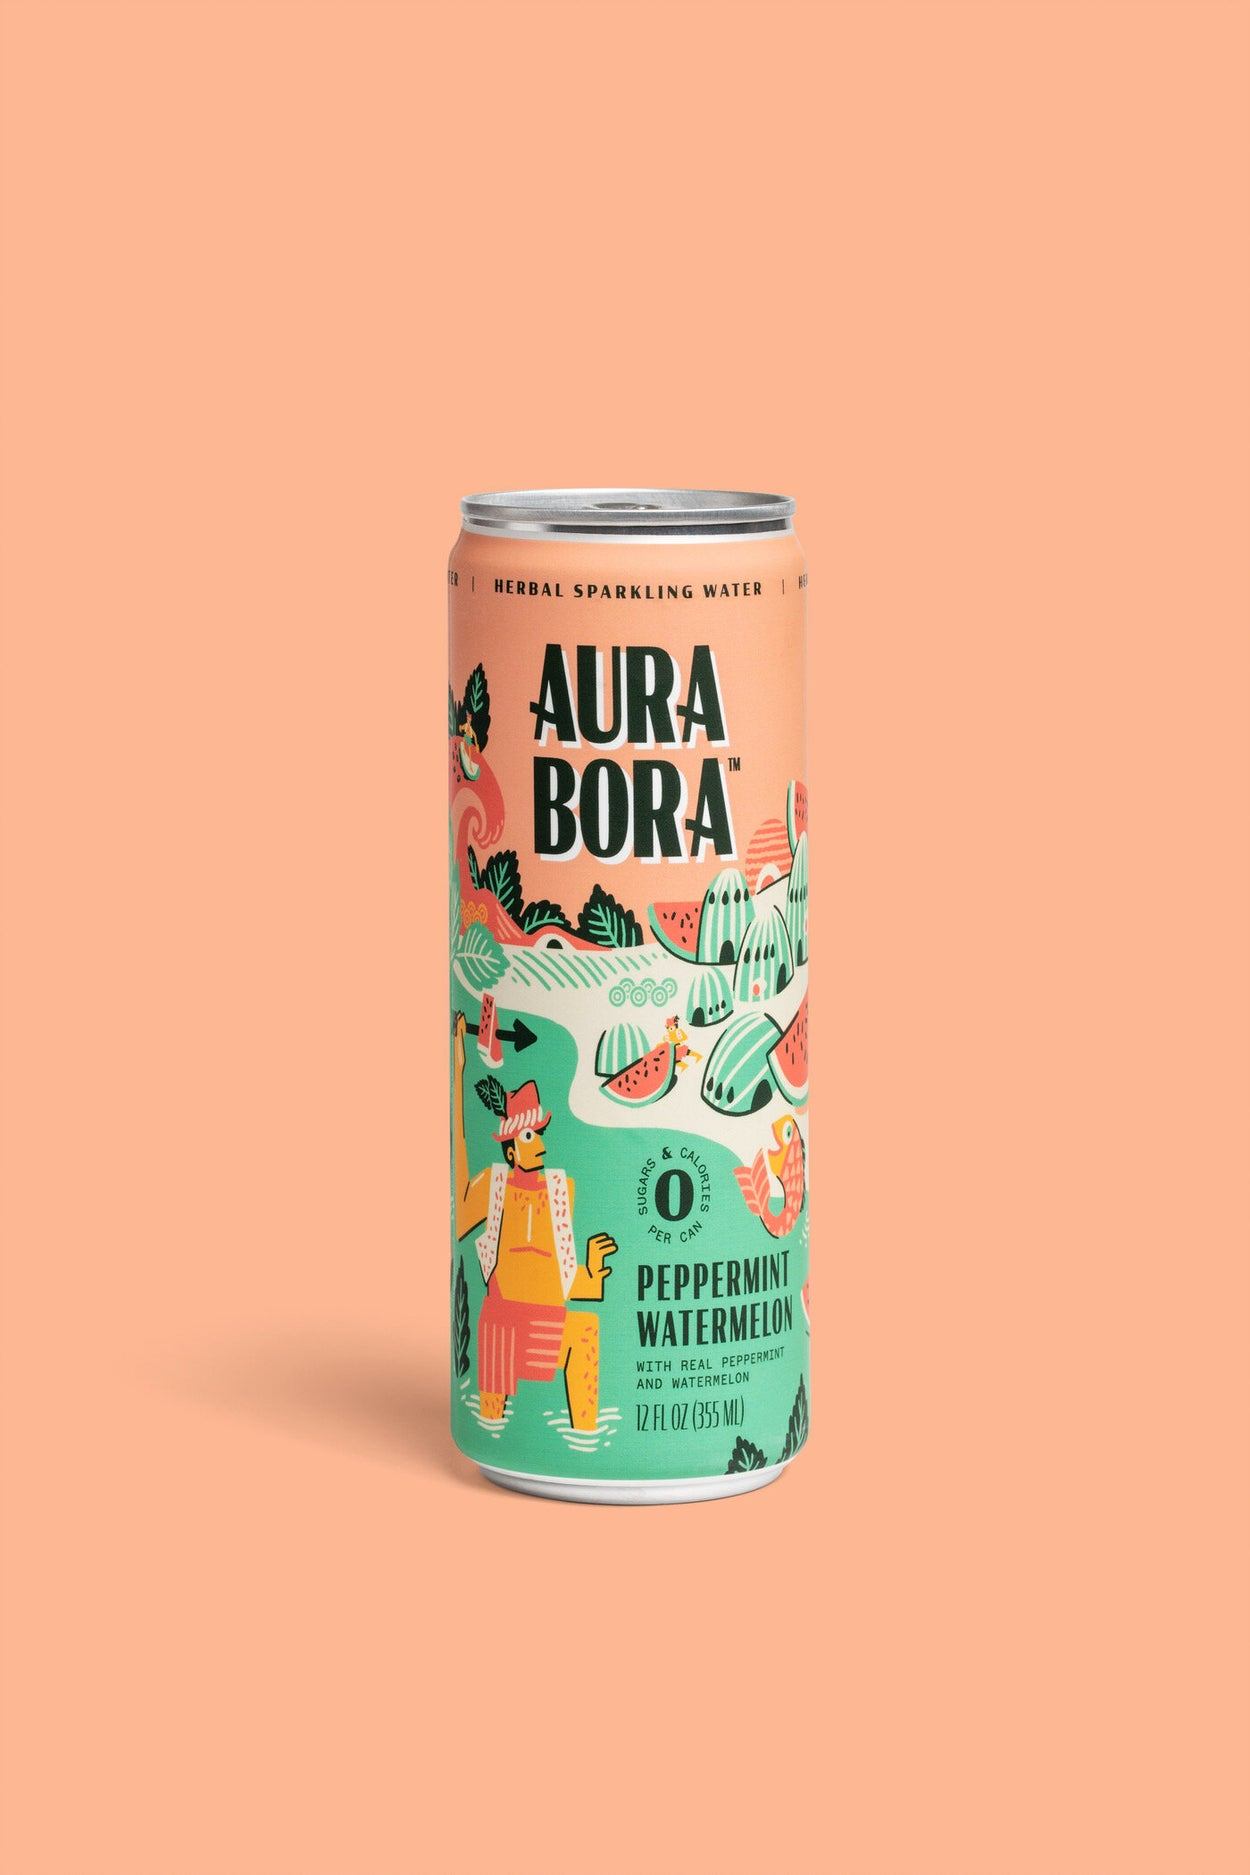 Aura Bora herbal sparkling water